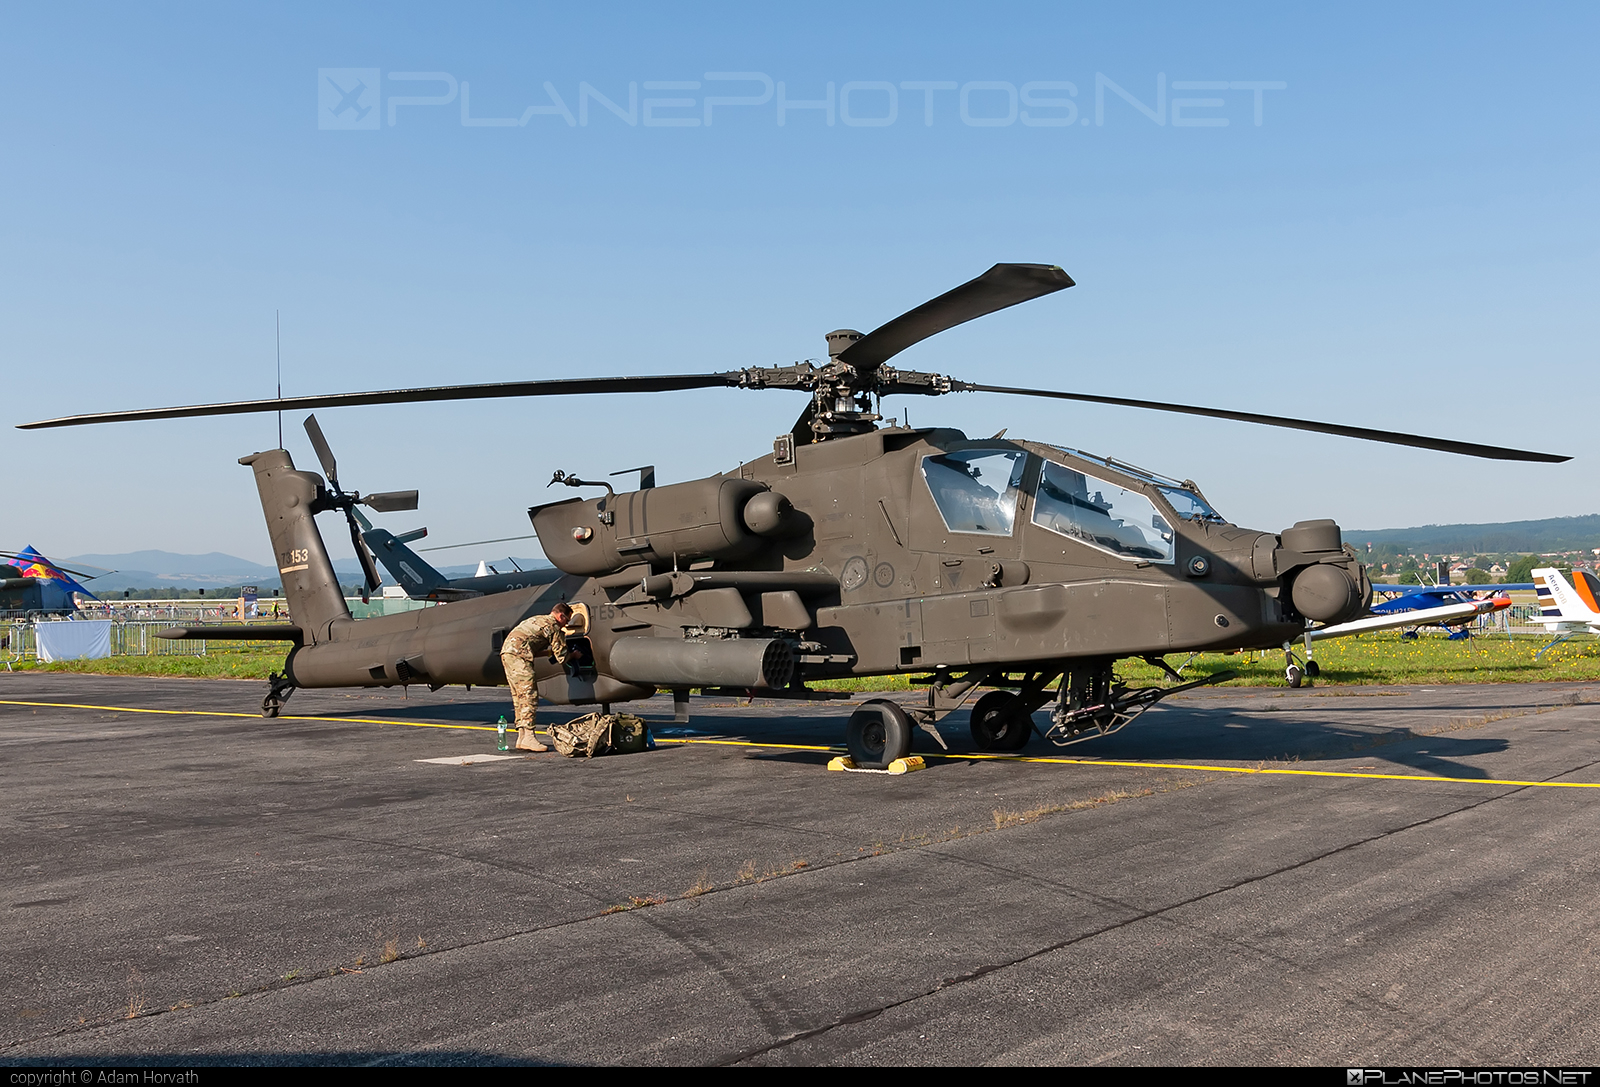 Boeing AH-64E Apache Guardian - 17-03153 operated by US Army #ah64 #ah64apache #ah64e #ah64eapache #ah64eapacheguardian #apacheguardian #boeing #siaf2019 #usarmy